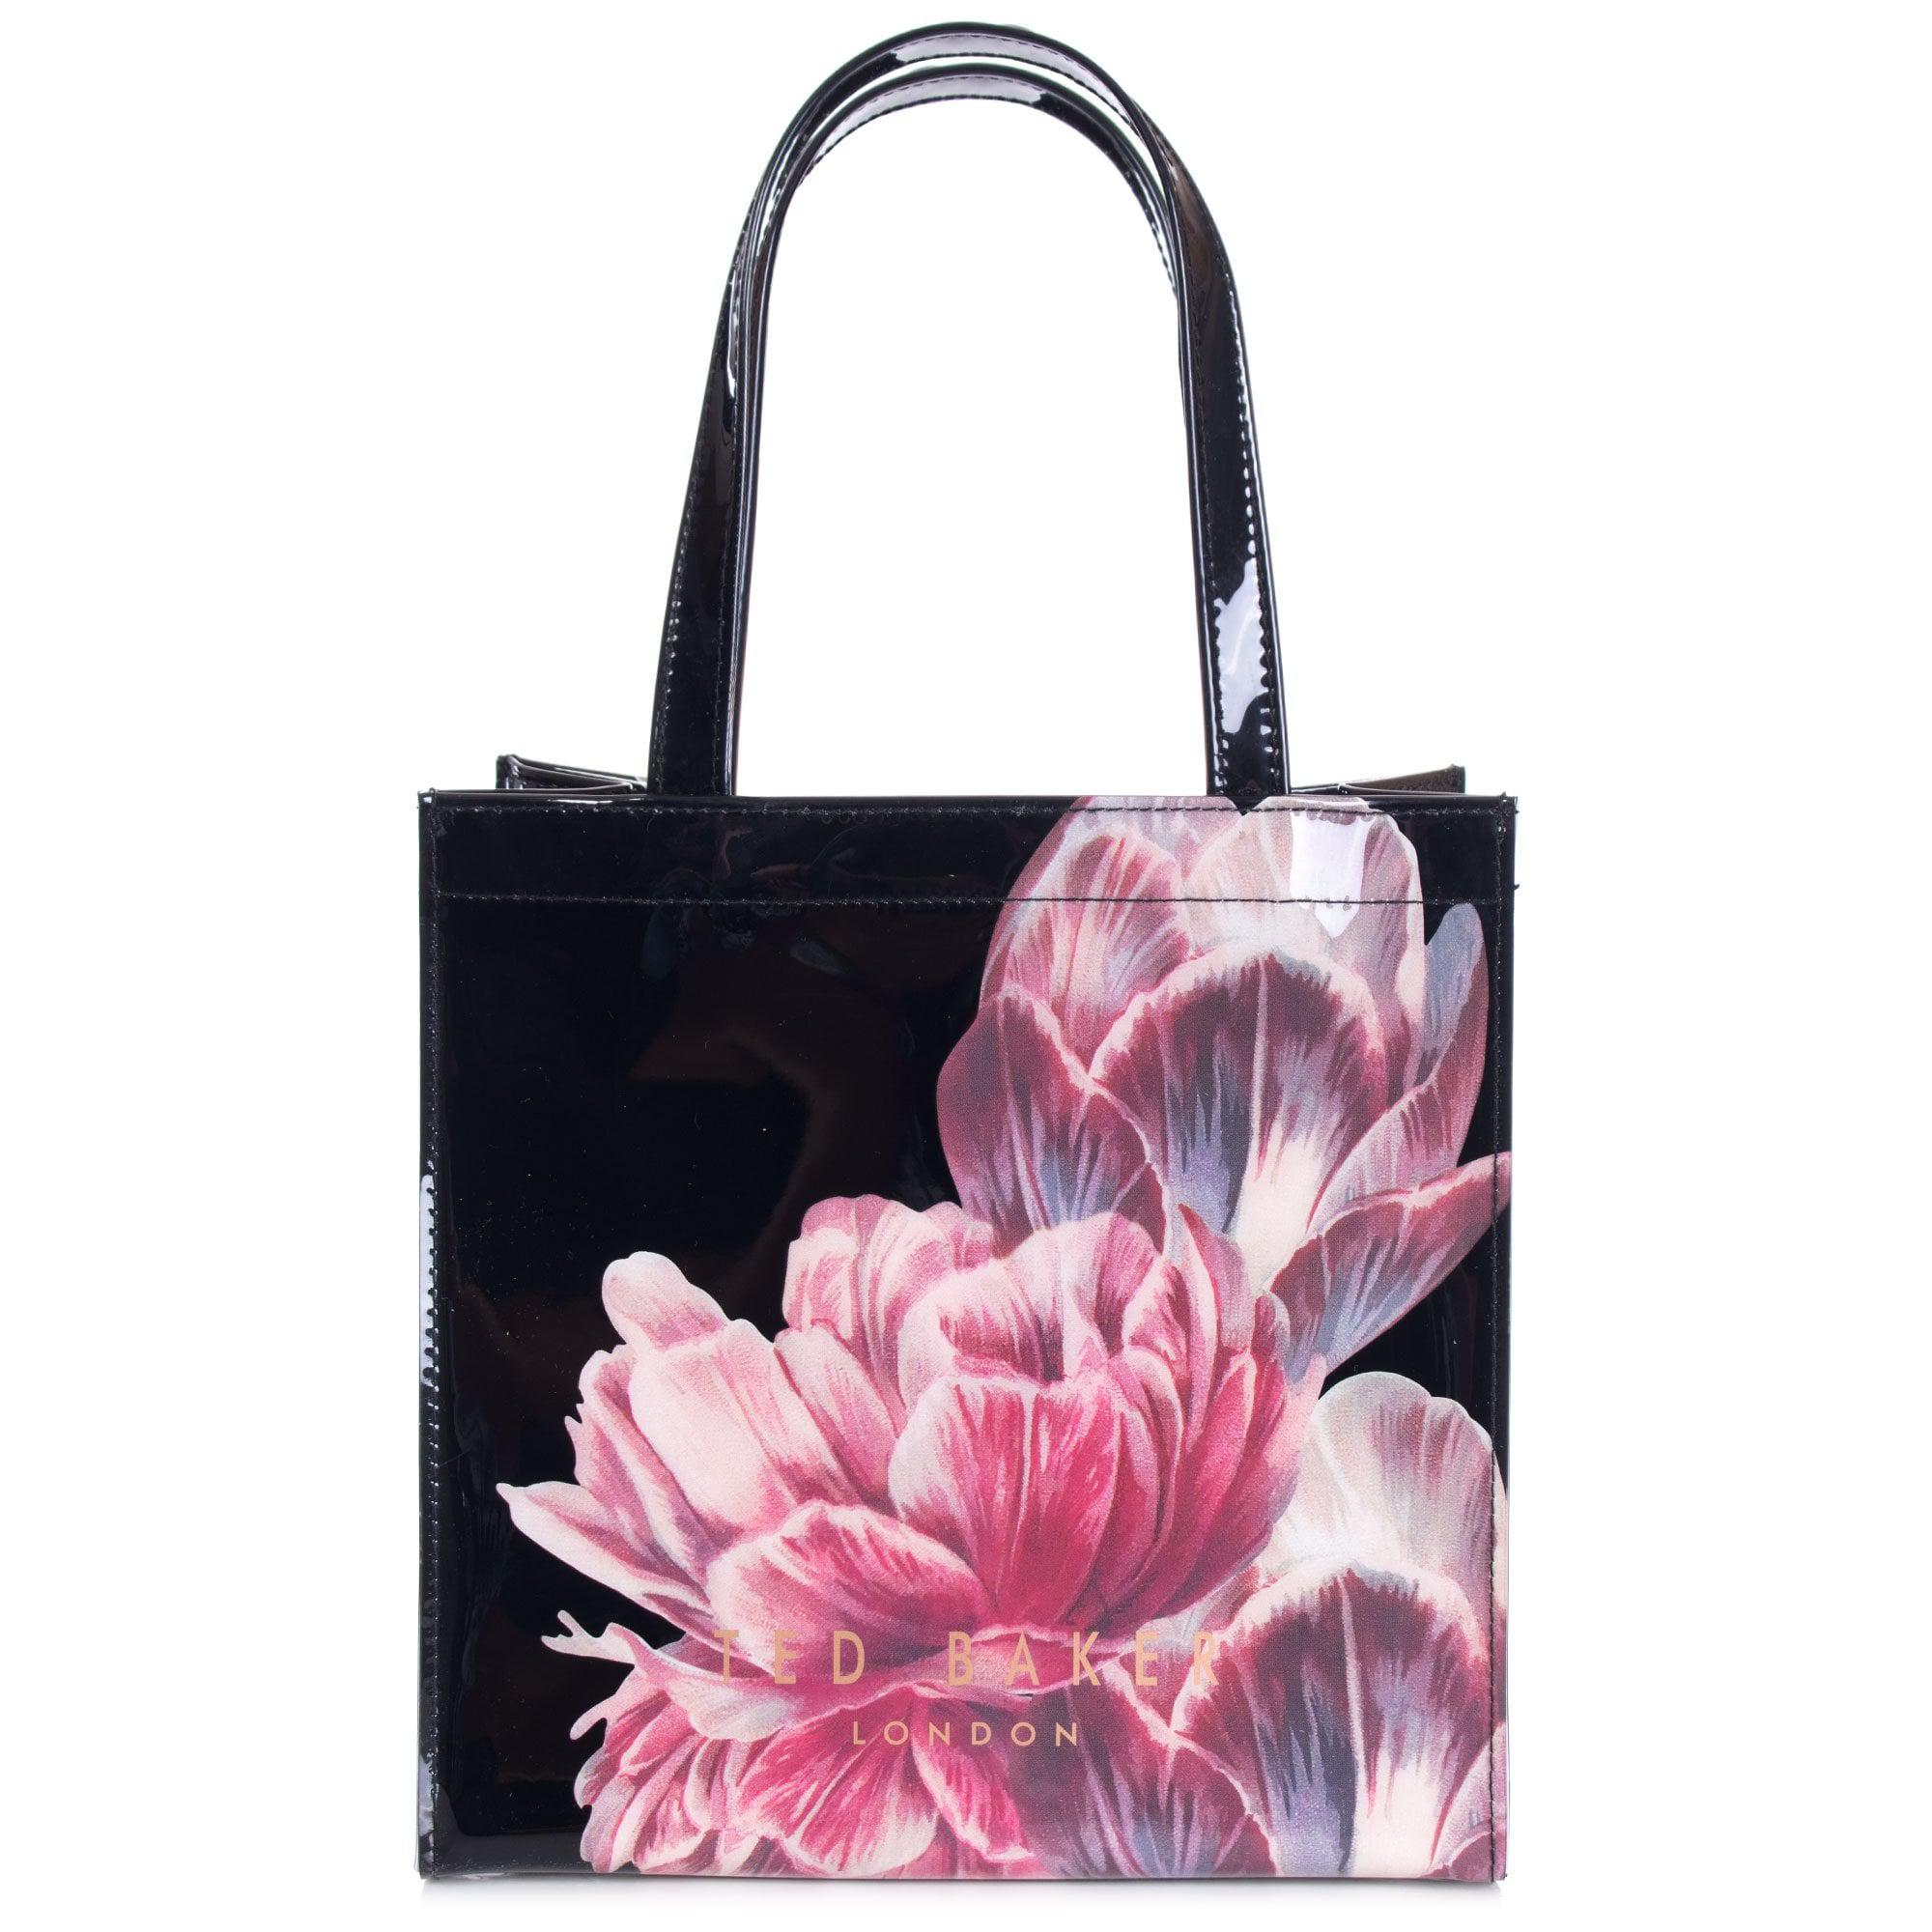 e51f903b6057 Ted Baker Tamycon Tranquility Small Shopper in Black - Lyst